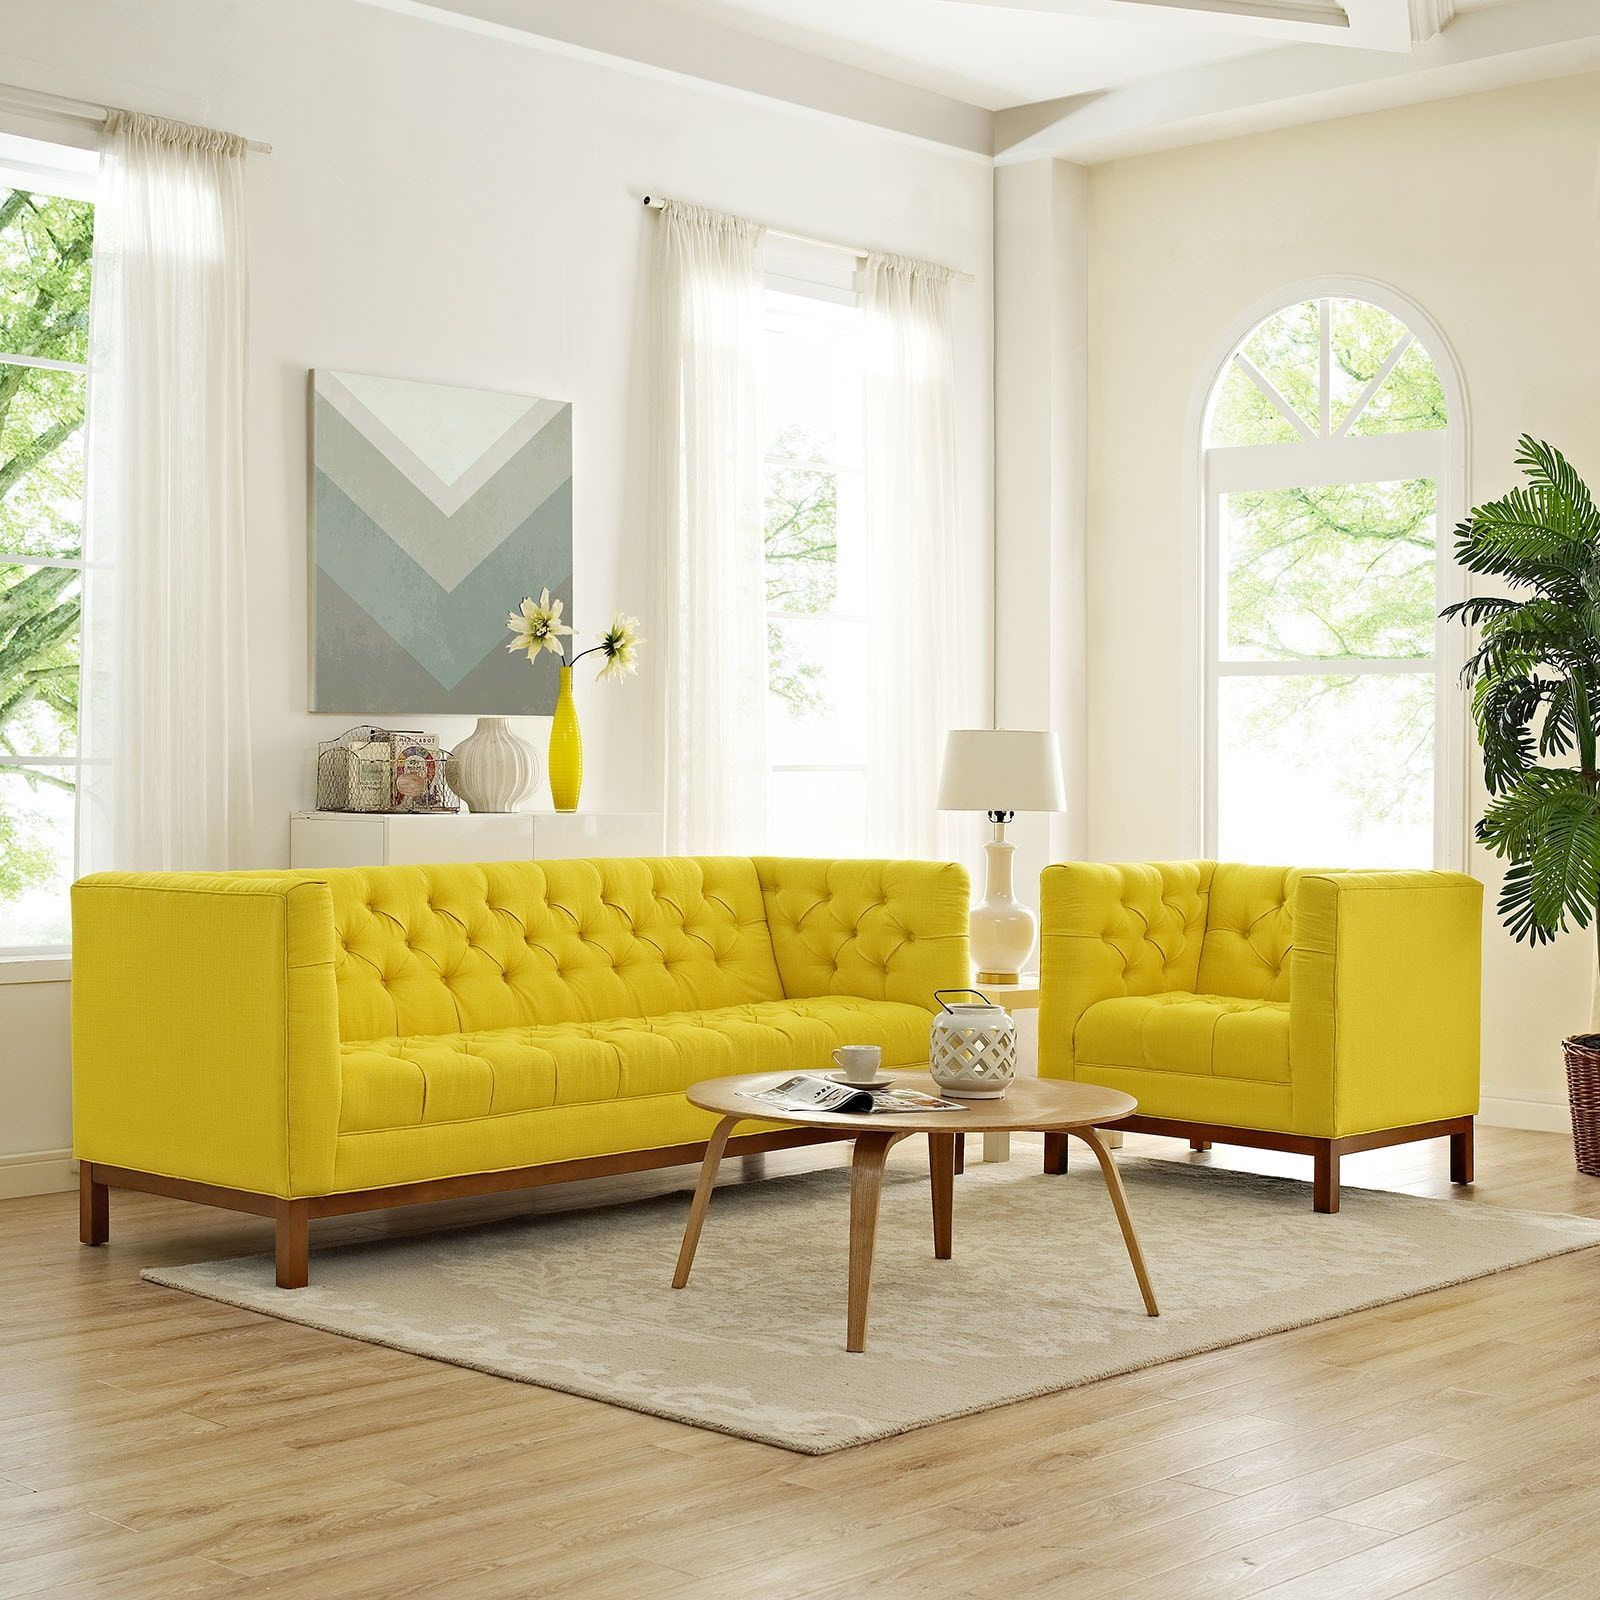 Modway Panache Yellow Fabric Living Room Furniture Set Set Of 2 Glamorous Yellow Living Rooms Inspiration